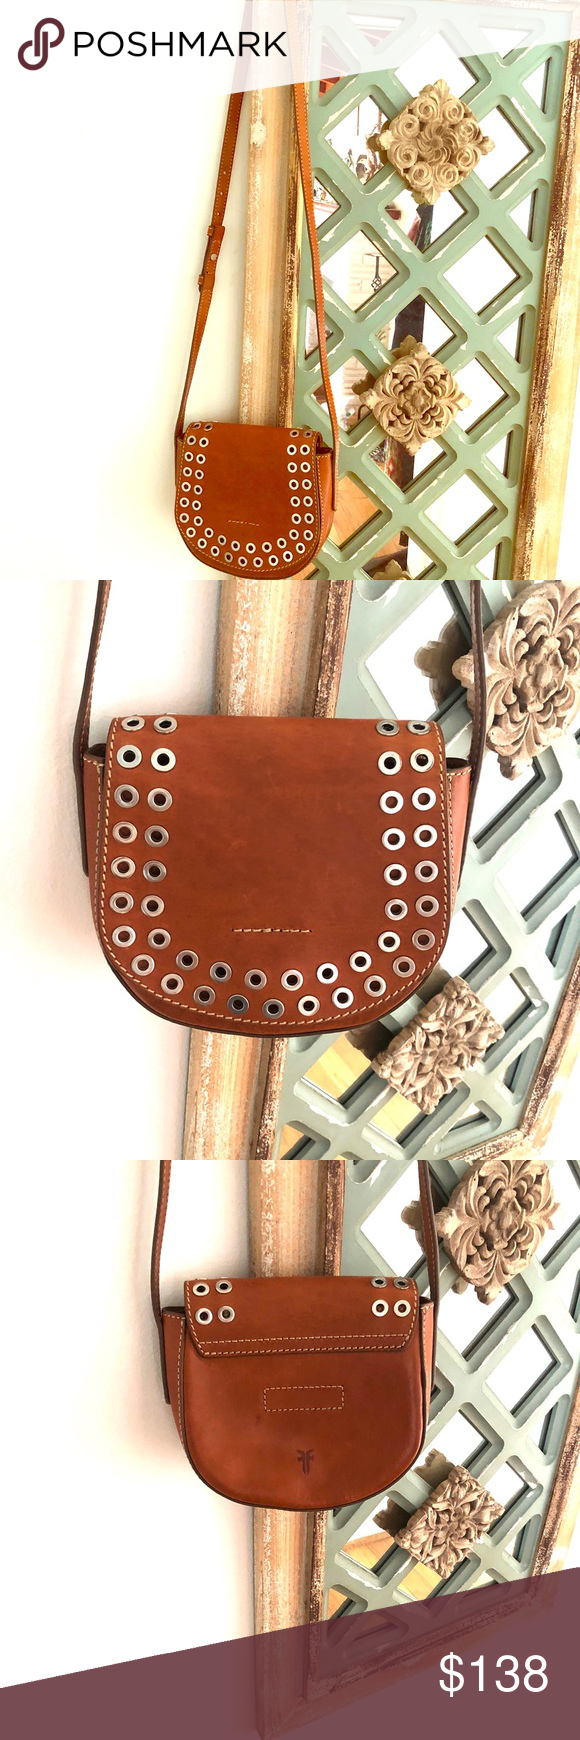 💯 Authentic Fry Cassidy Small Saddle Bag Rust 😍 NEW RUST CASSIDY FRYE SADDLE BAG 🌻 You can use as a...